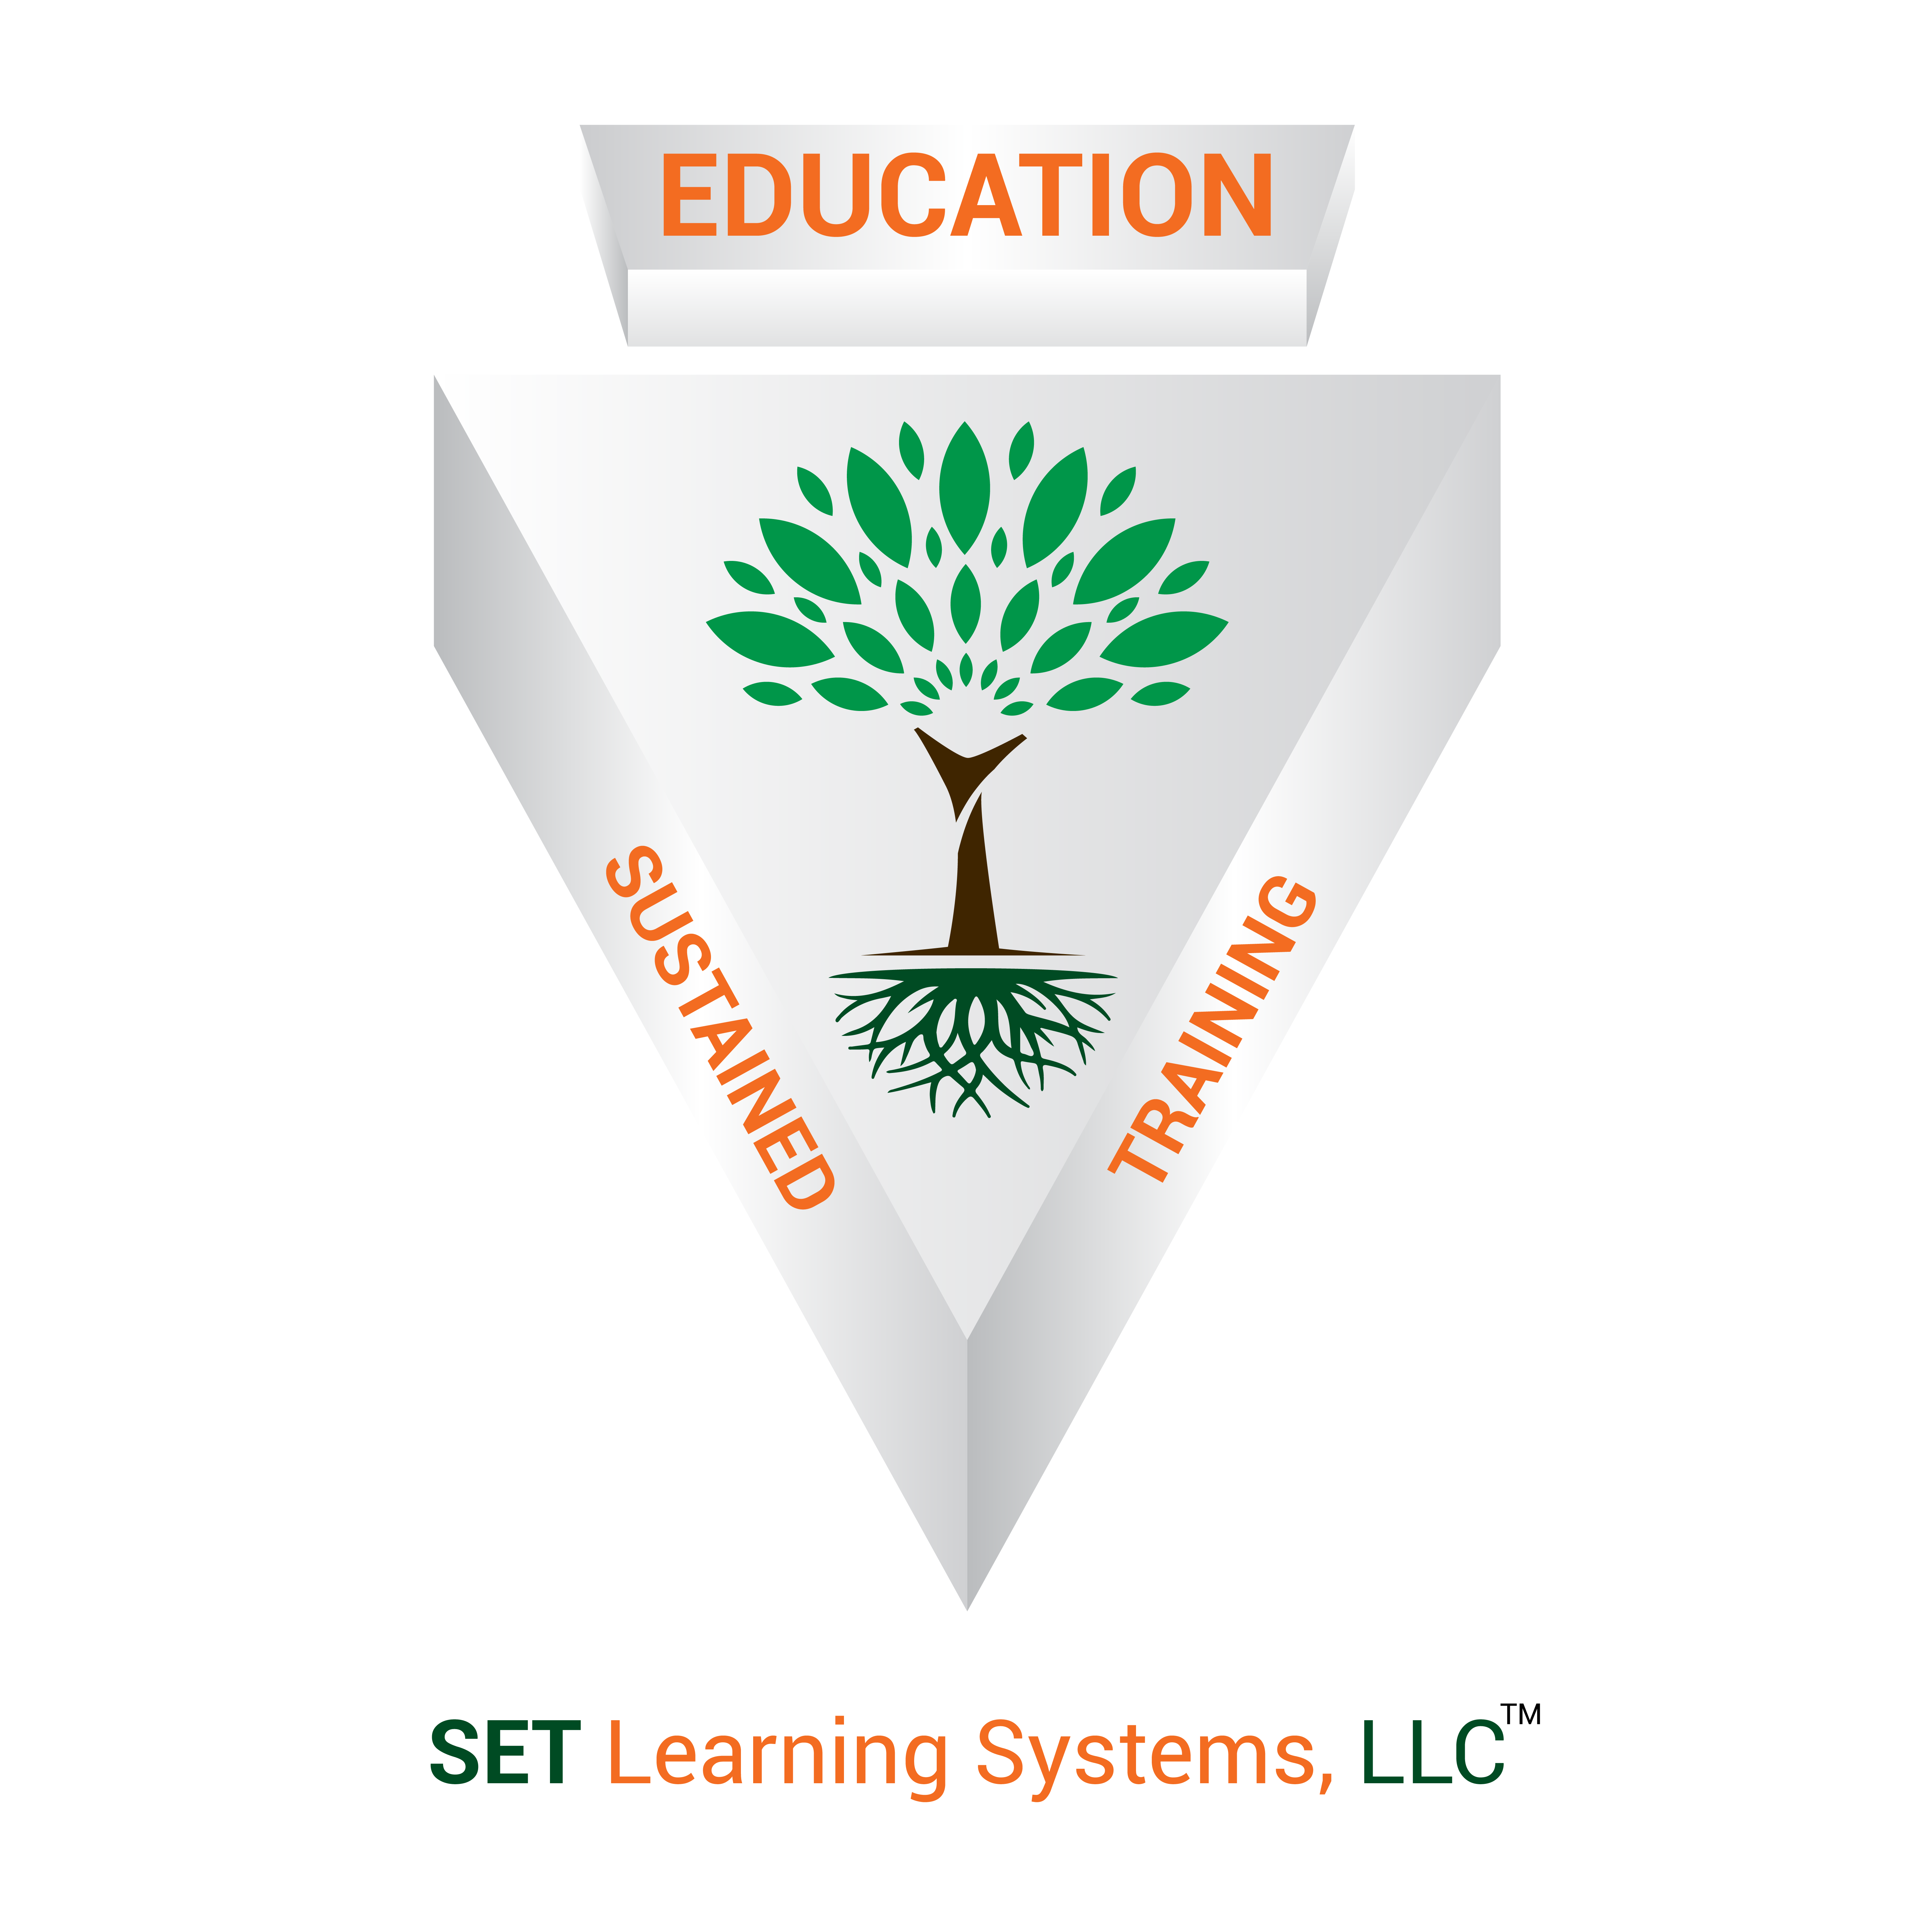 SET Learning Systems